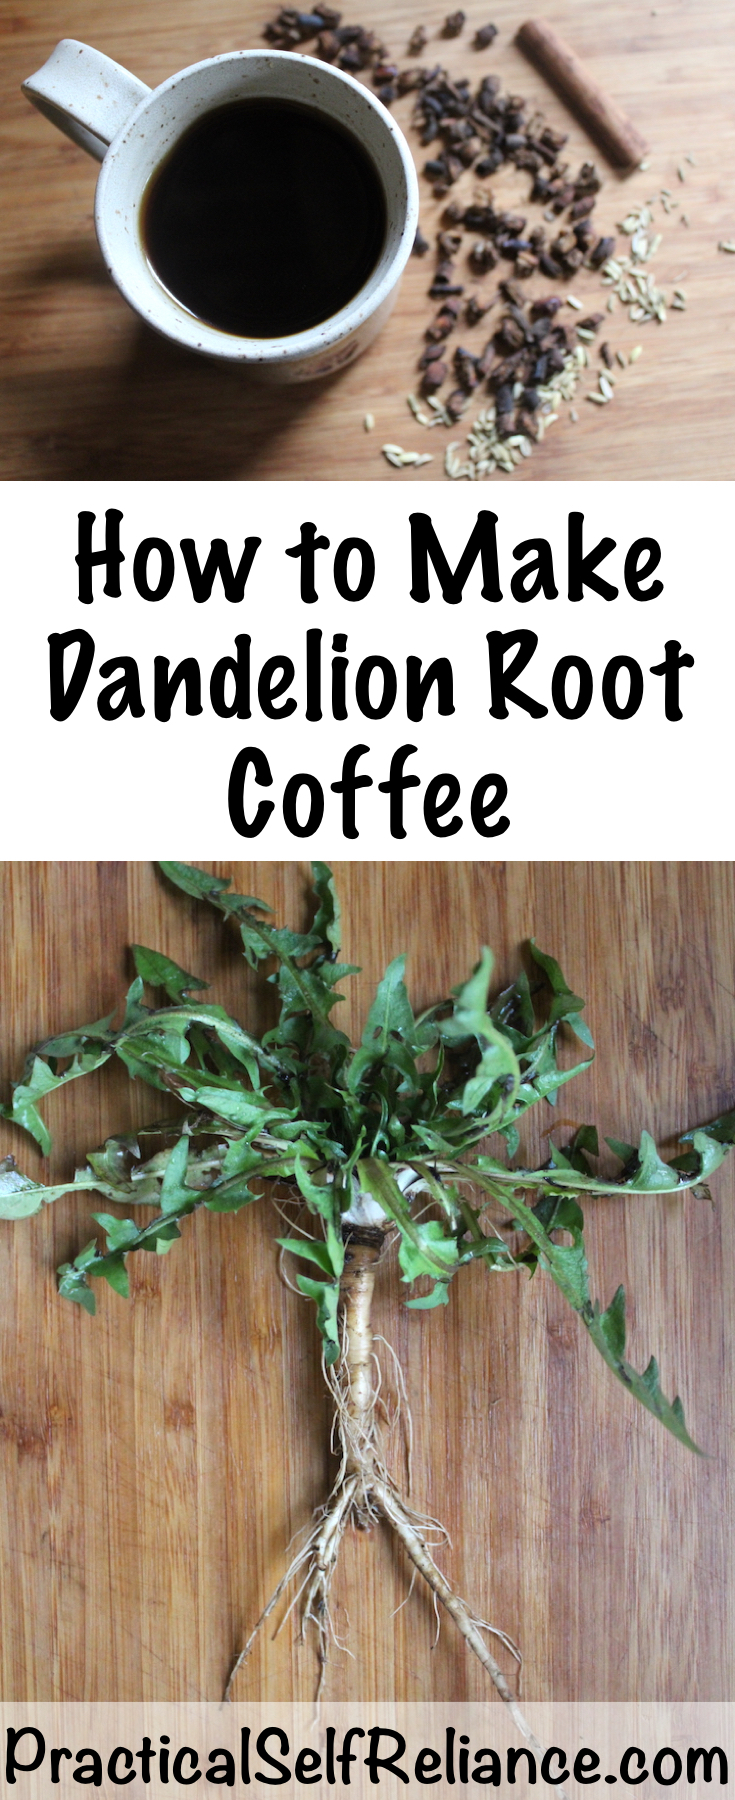 How to Make Dandelion Root Coffee ~ With roasted dandelions ~ wild foraged food #coffee #quitcoffee #herbalcoffee #dandelioncoffee #dandelion #dandelions #dandelionroot #dandelionrecipe #herbs #herbalism  #foraging #wildfood #forage #selfsufficiency  #wildcrafting